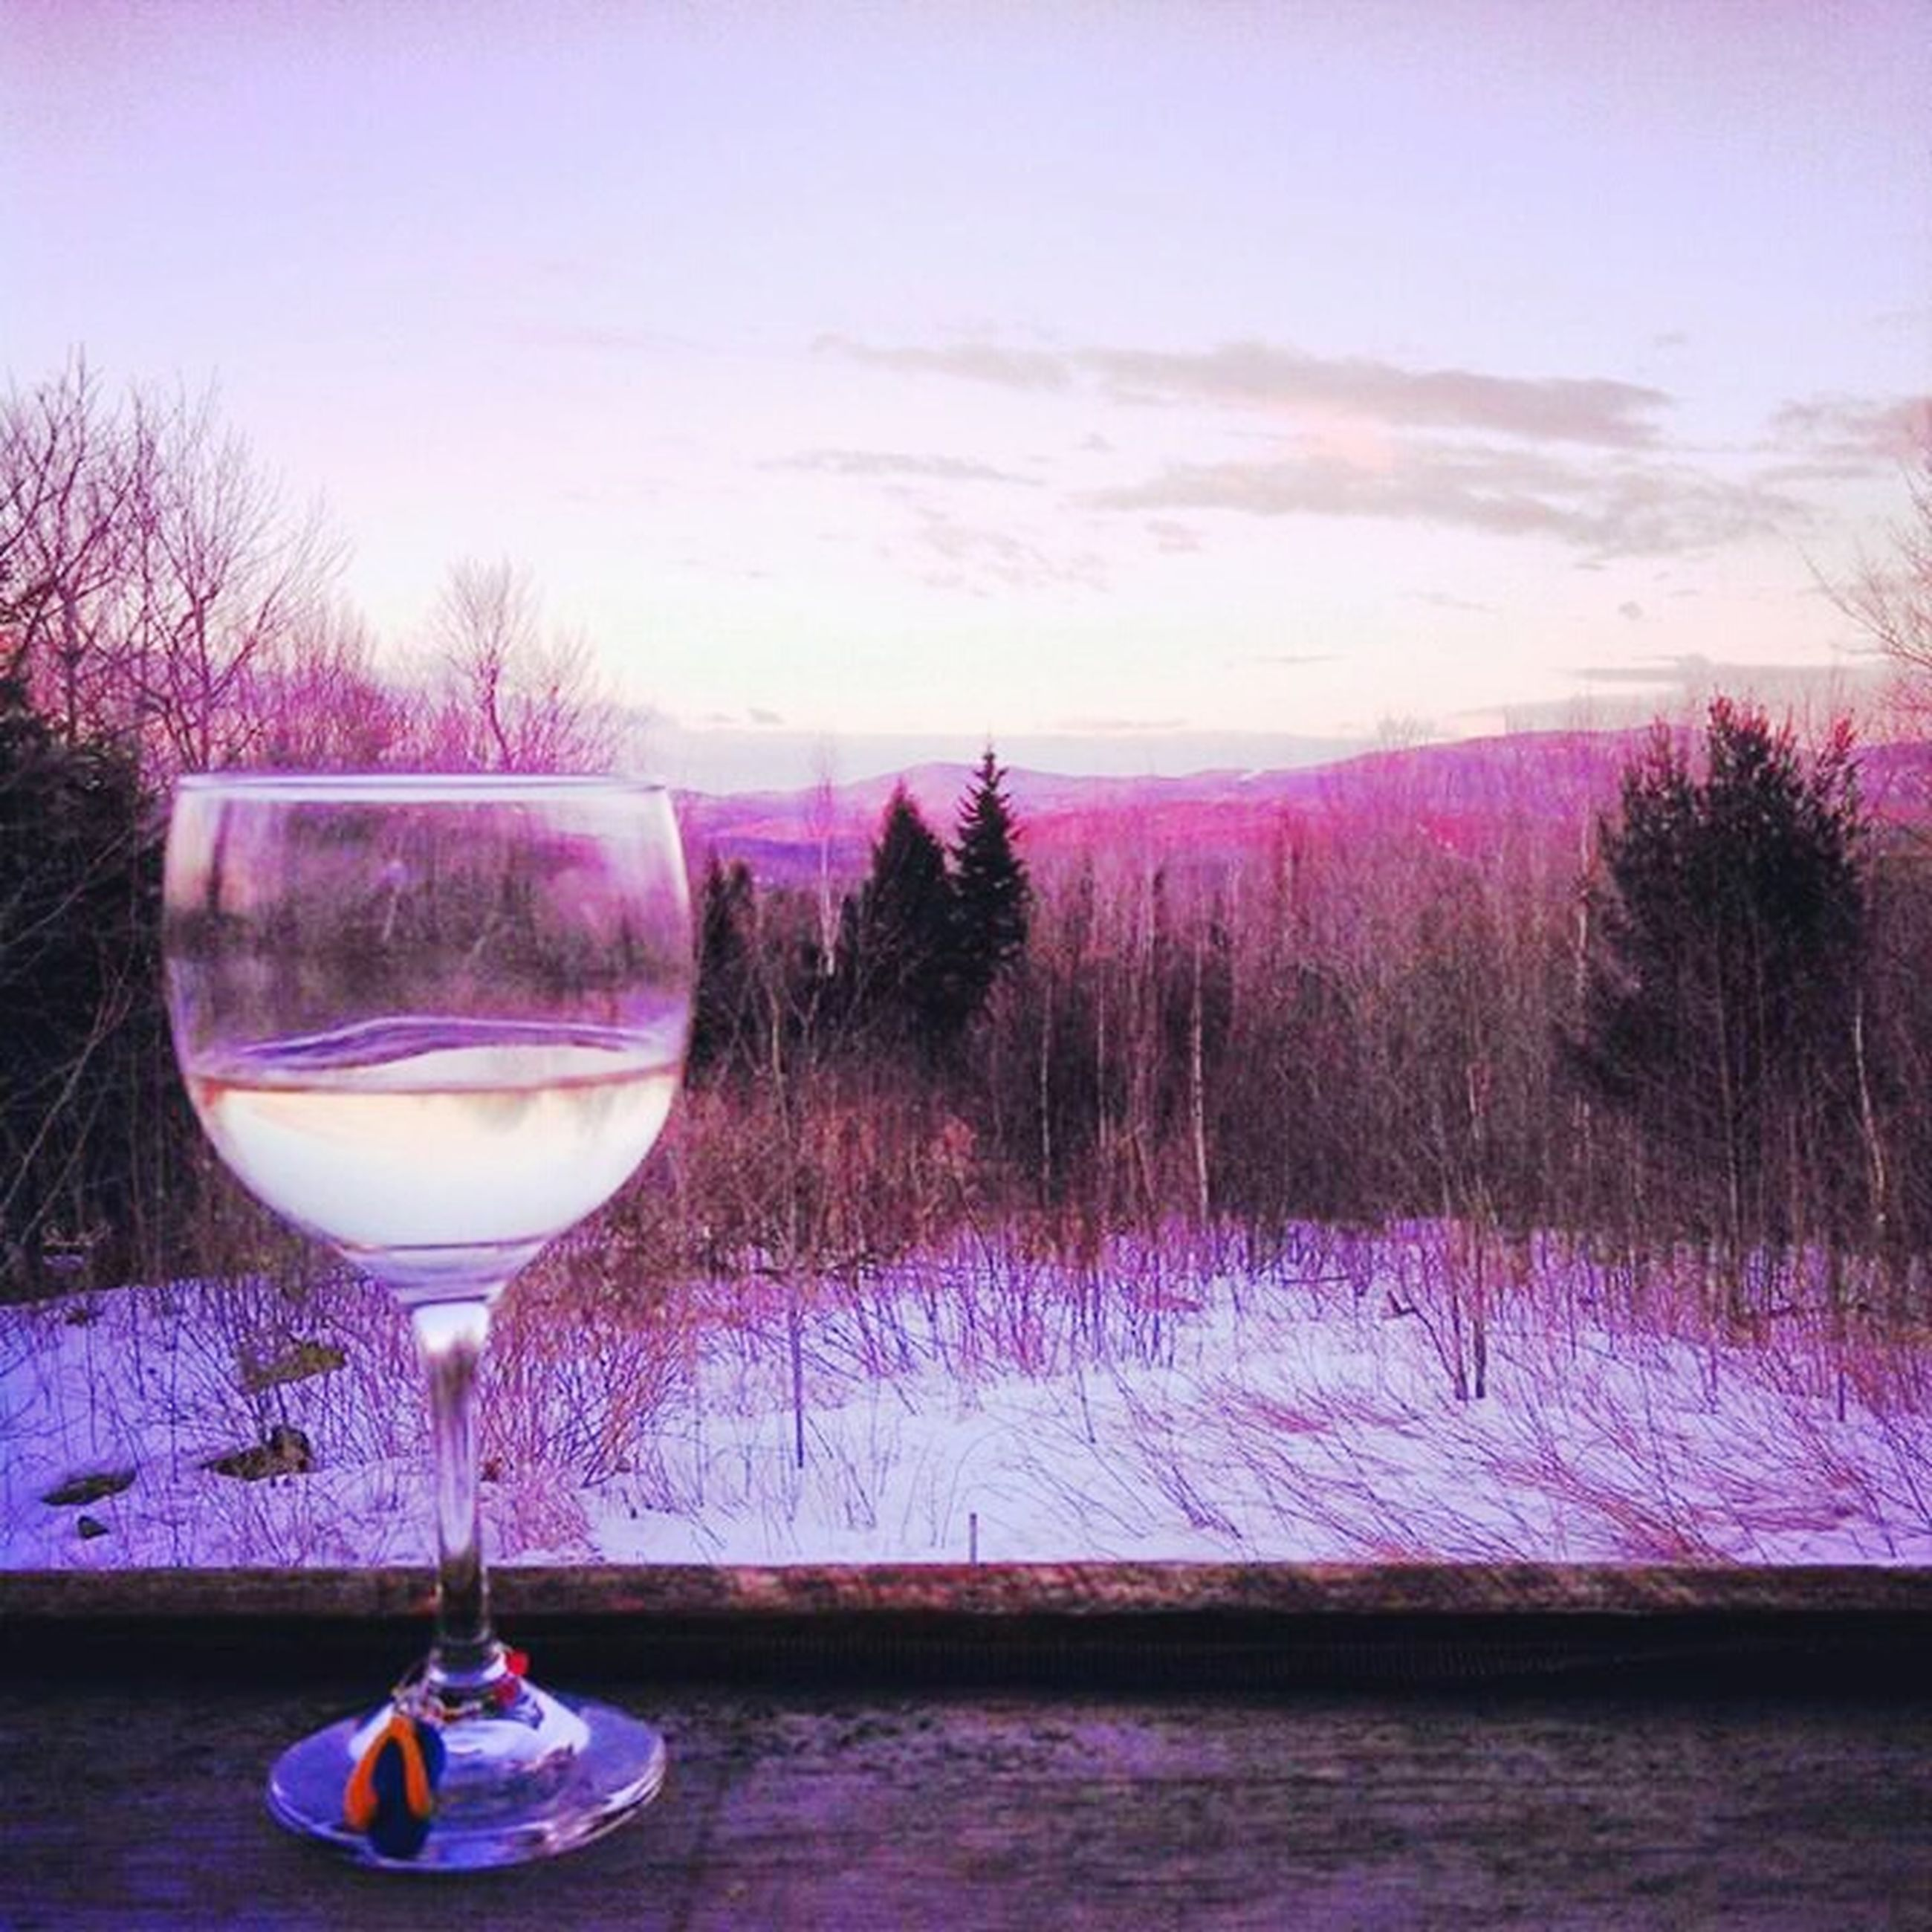 wineglass, drink, drinking glass, food and drink, table, glass - material, refreshment, freshness, sky, tree, alcohol, transparent, close-up, pink color, nature, reflection, still life, beauty in nature, focus on foreground, no people